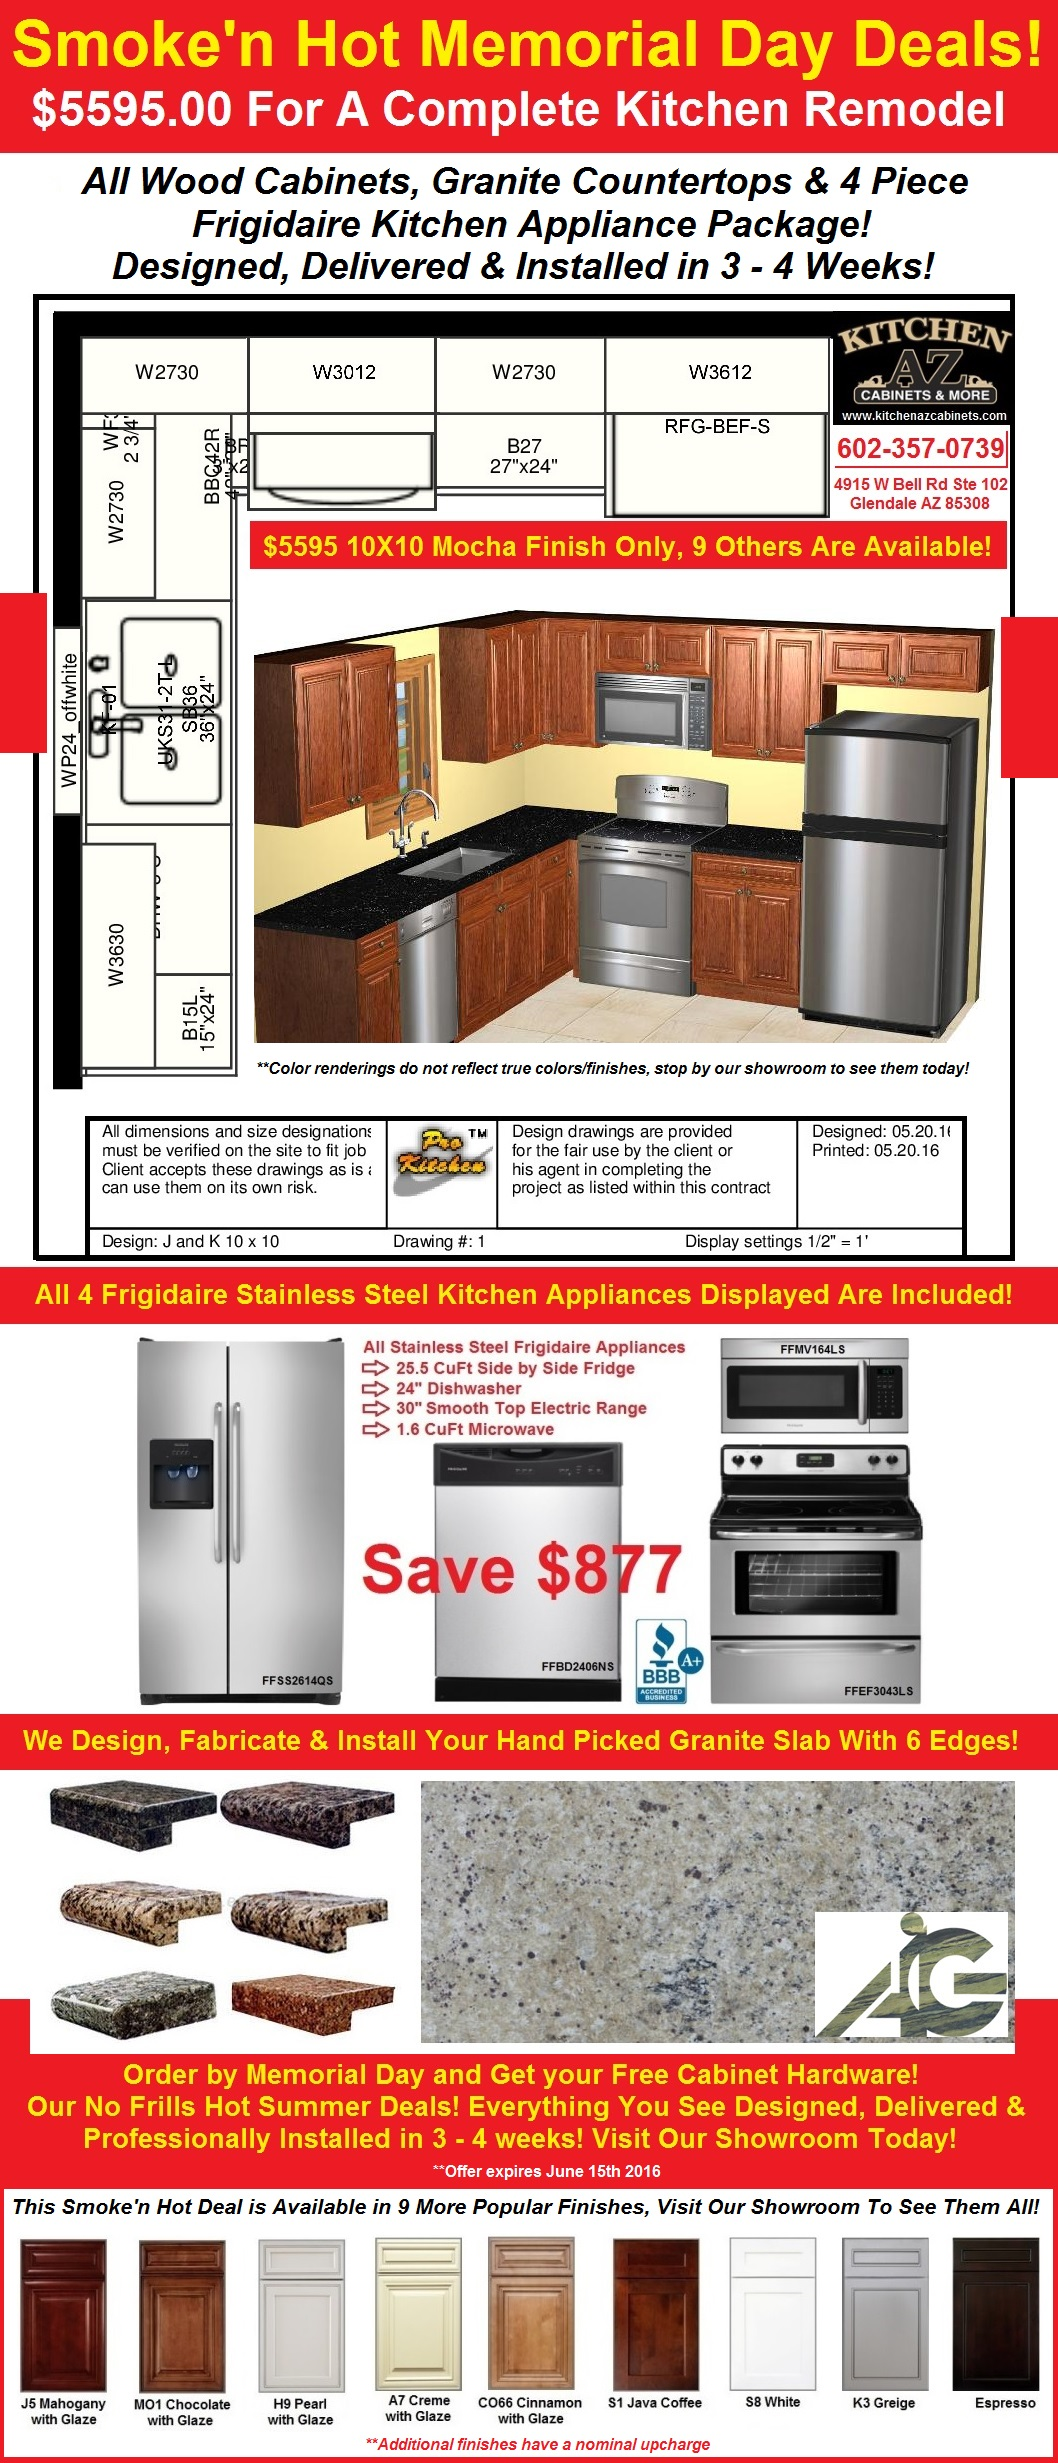 Kitchen Remodeling Packages All Wood Not $995